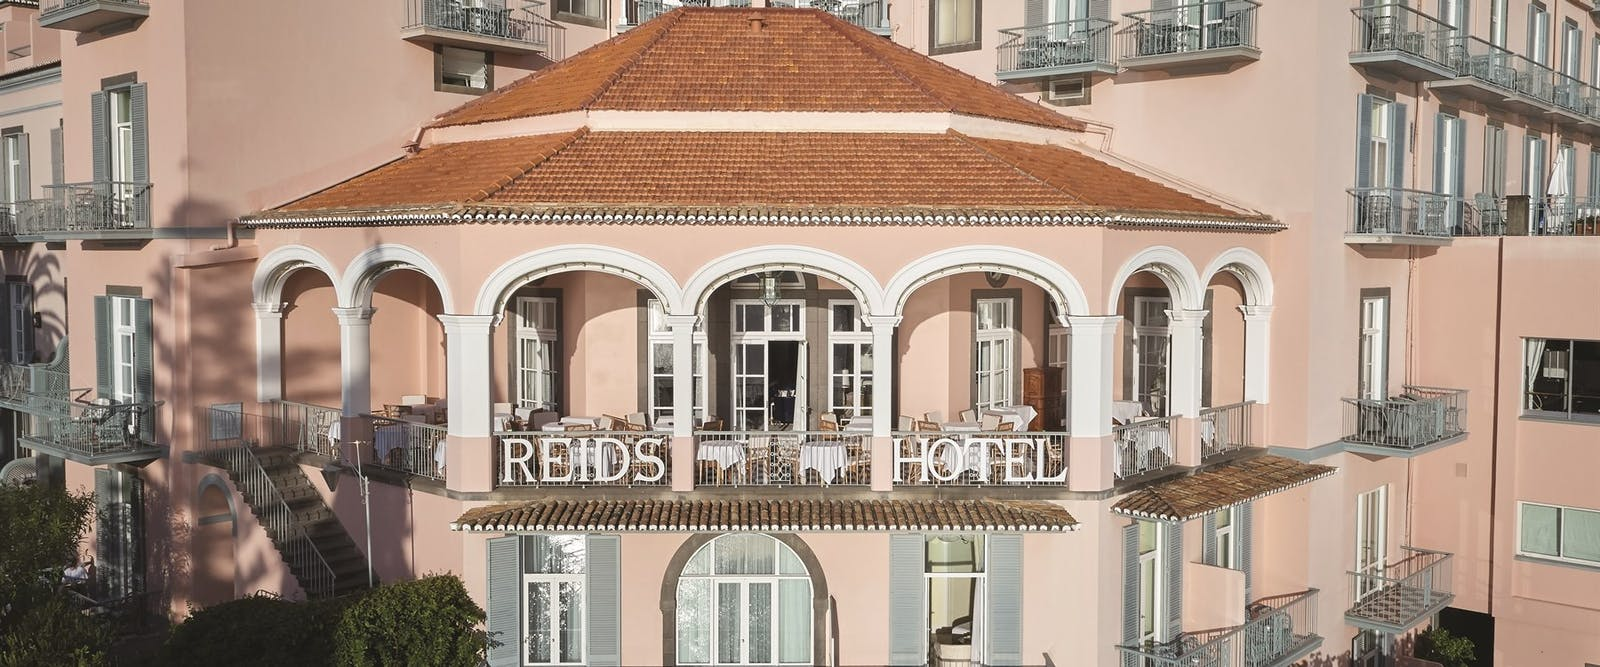 Front Entrance at Reid's Palace, A Belmond Hotel, Madeira, Portugal